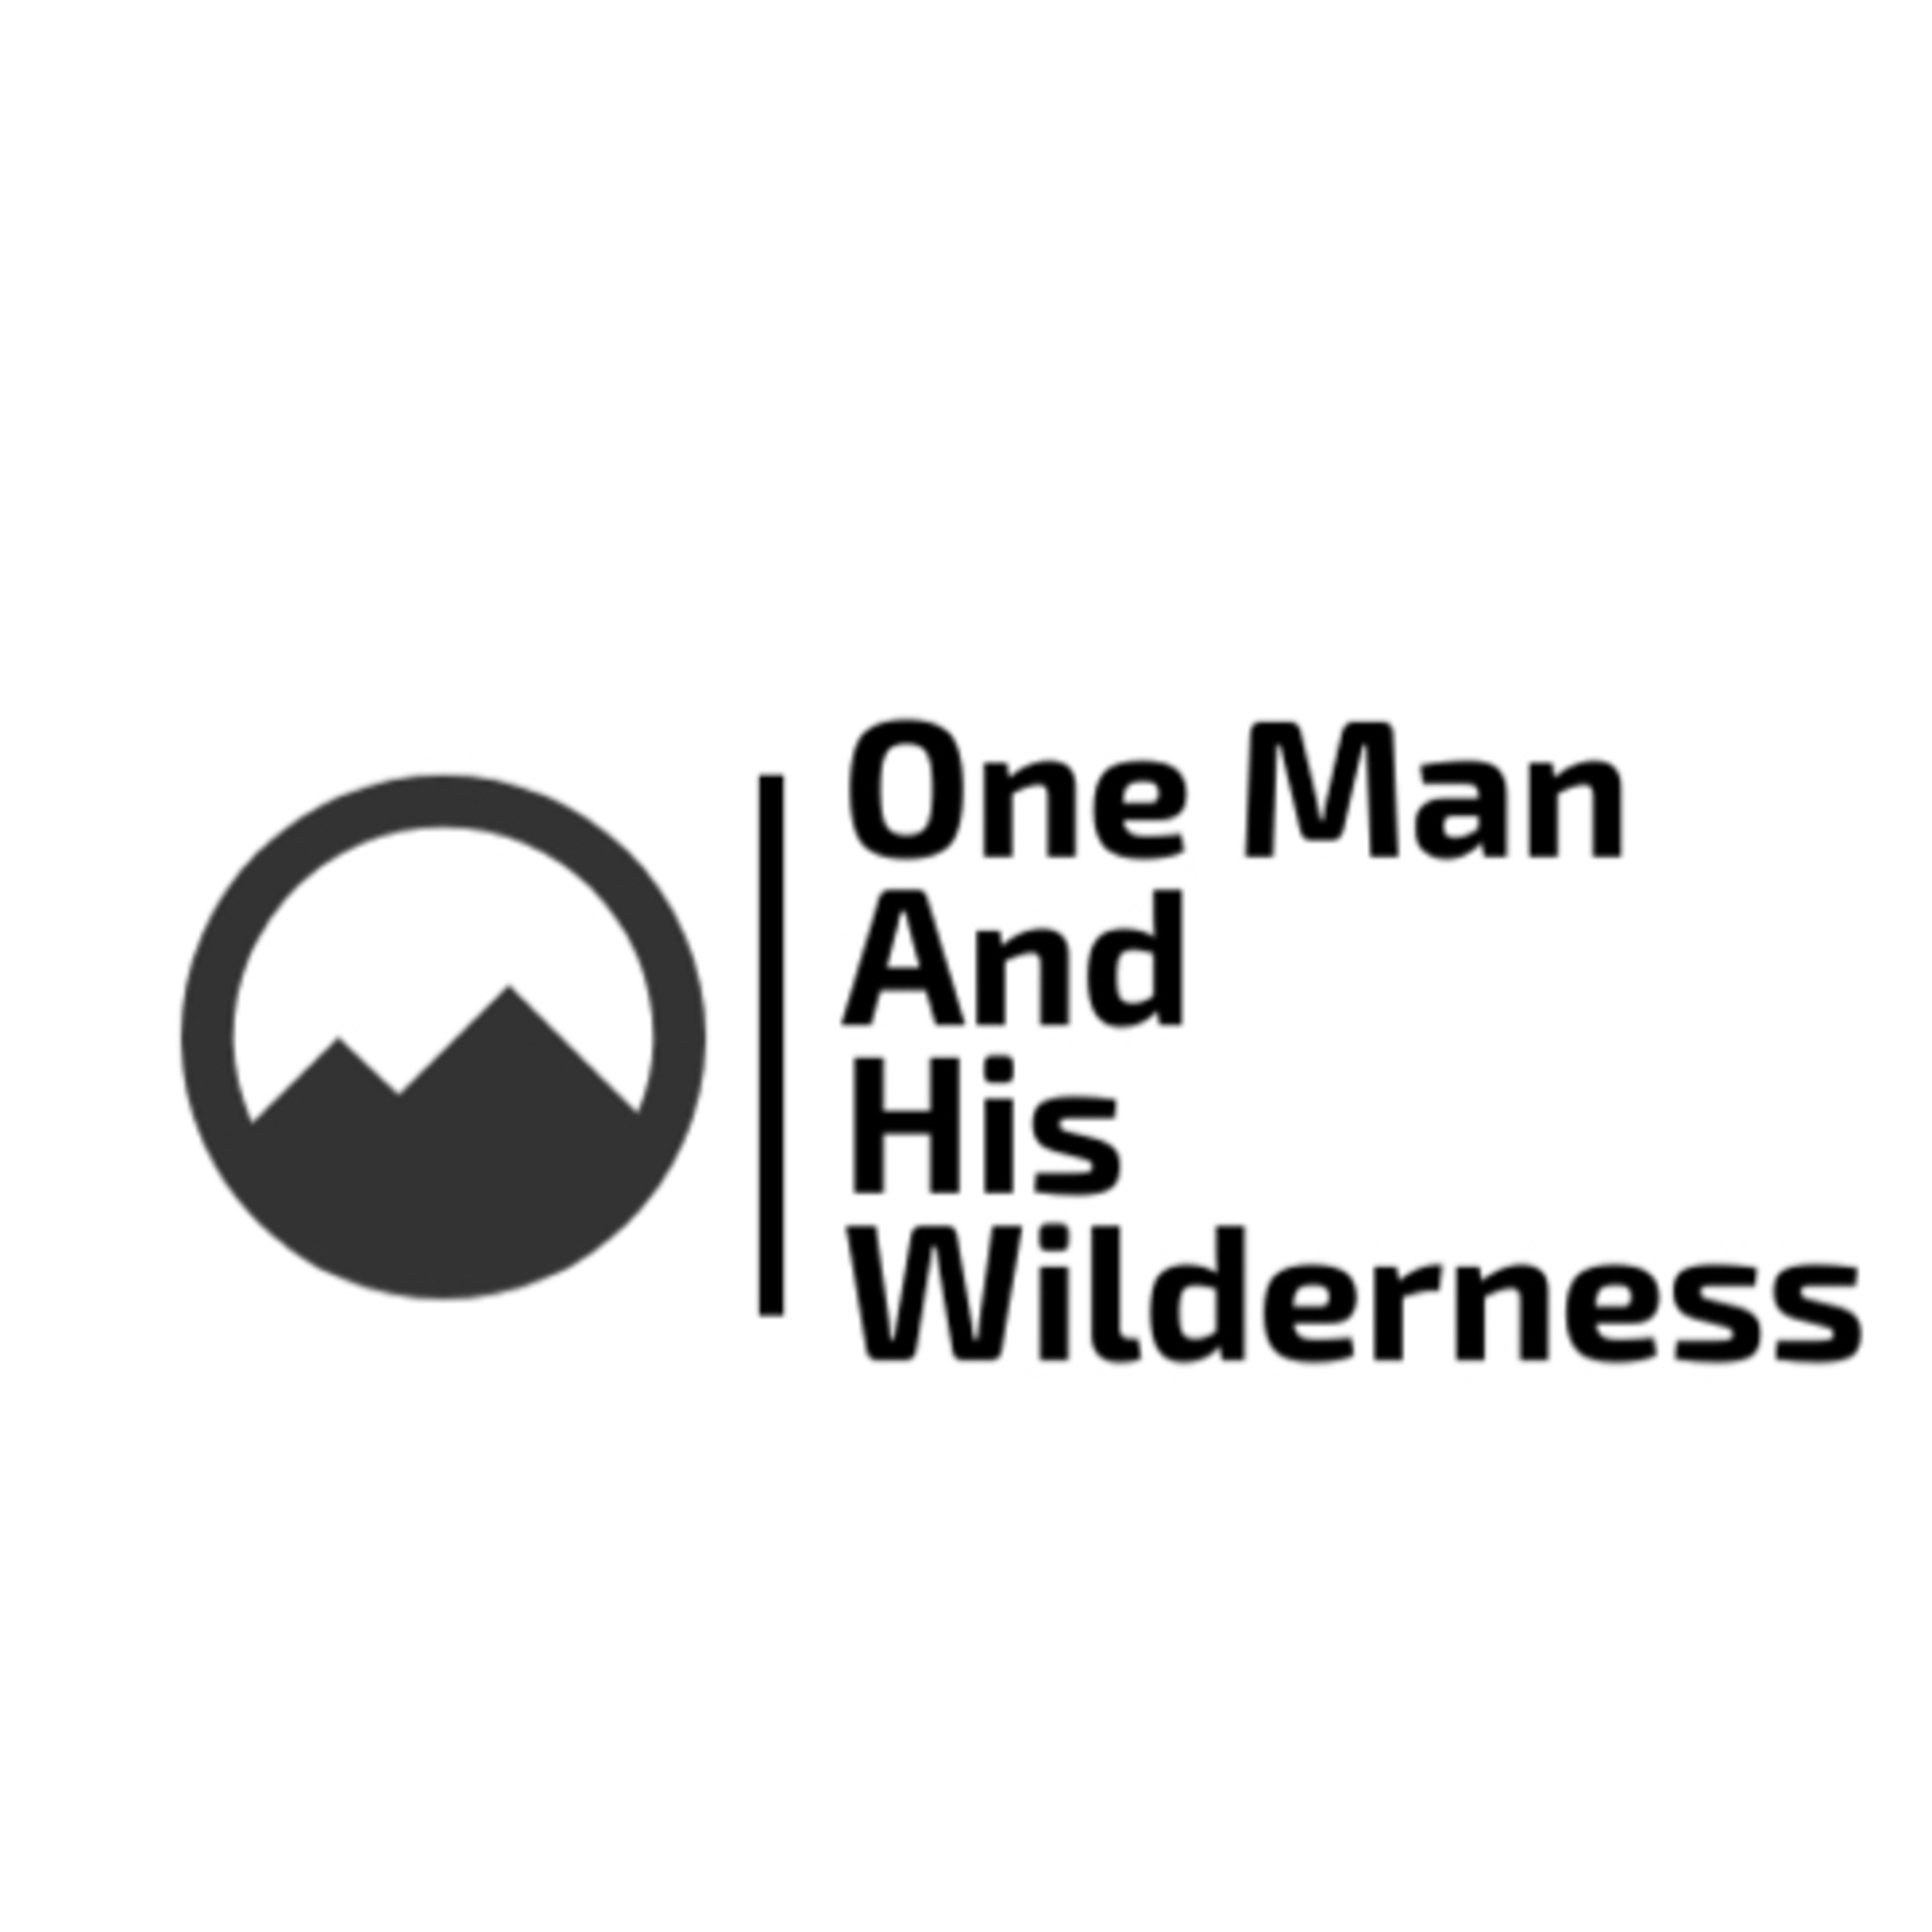 One Man and His Wilderness